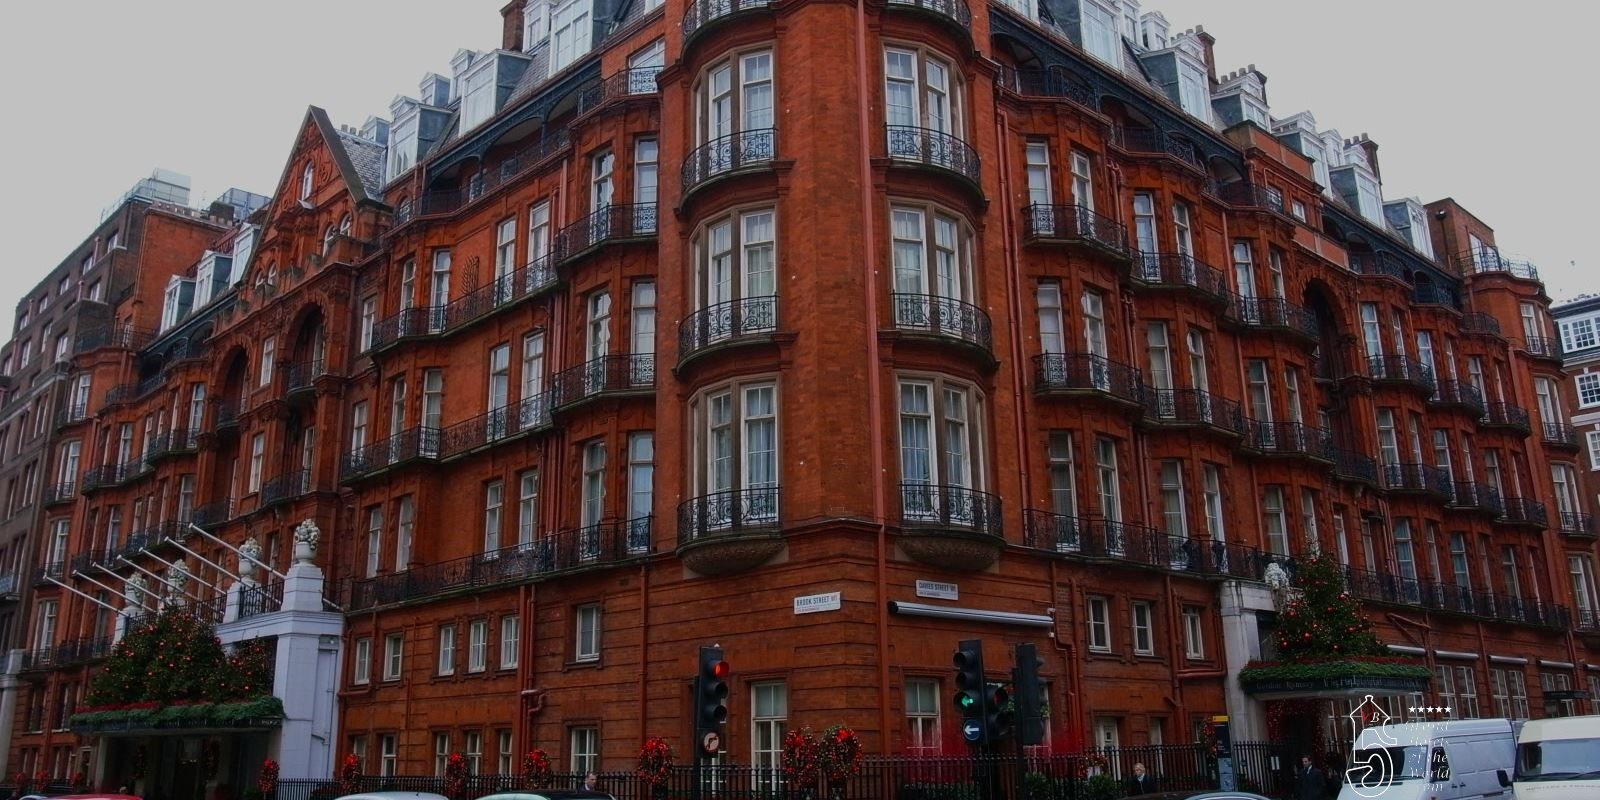 Hotel Claridges in London